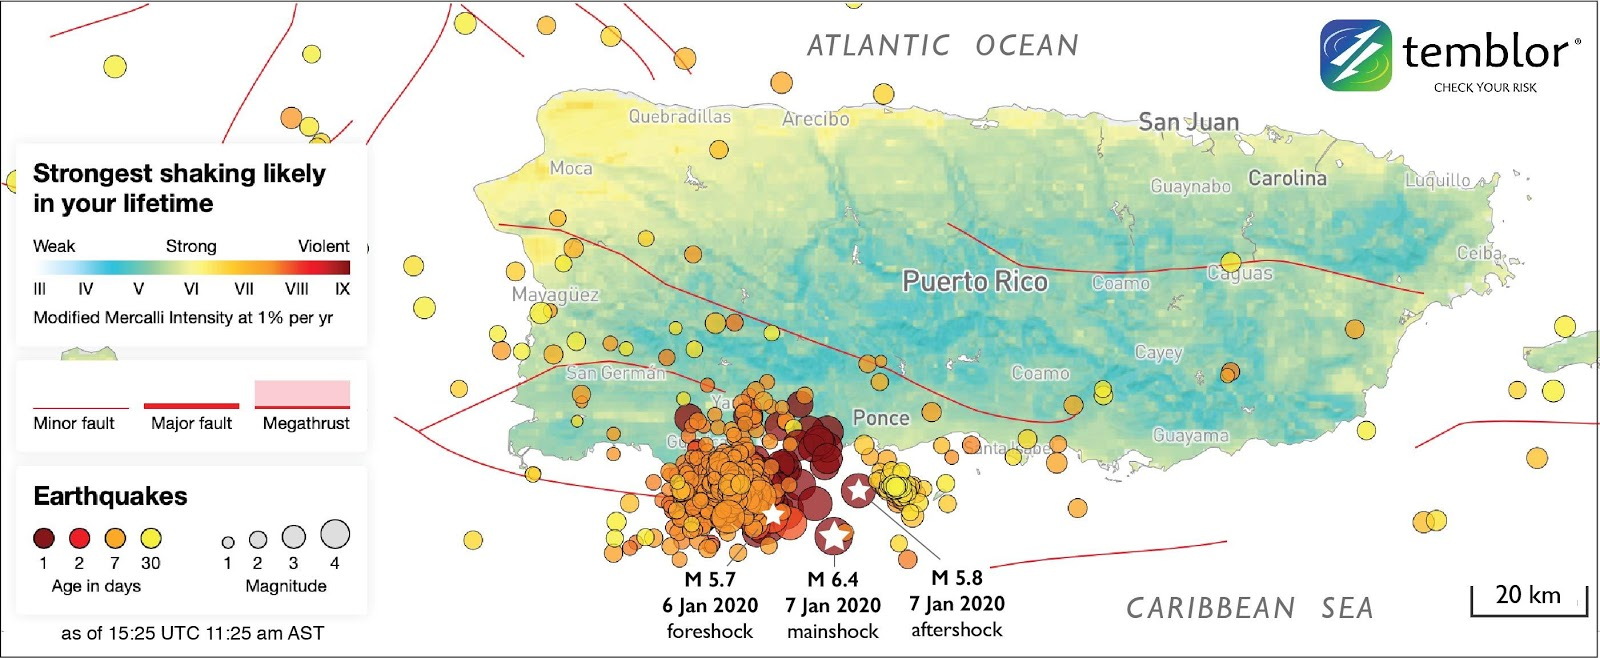 Thematic map of current seismic activity in Puerto Rico